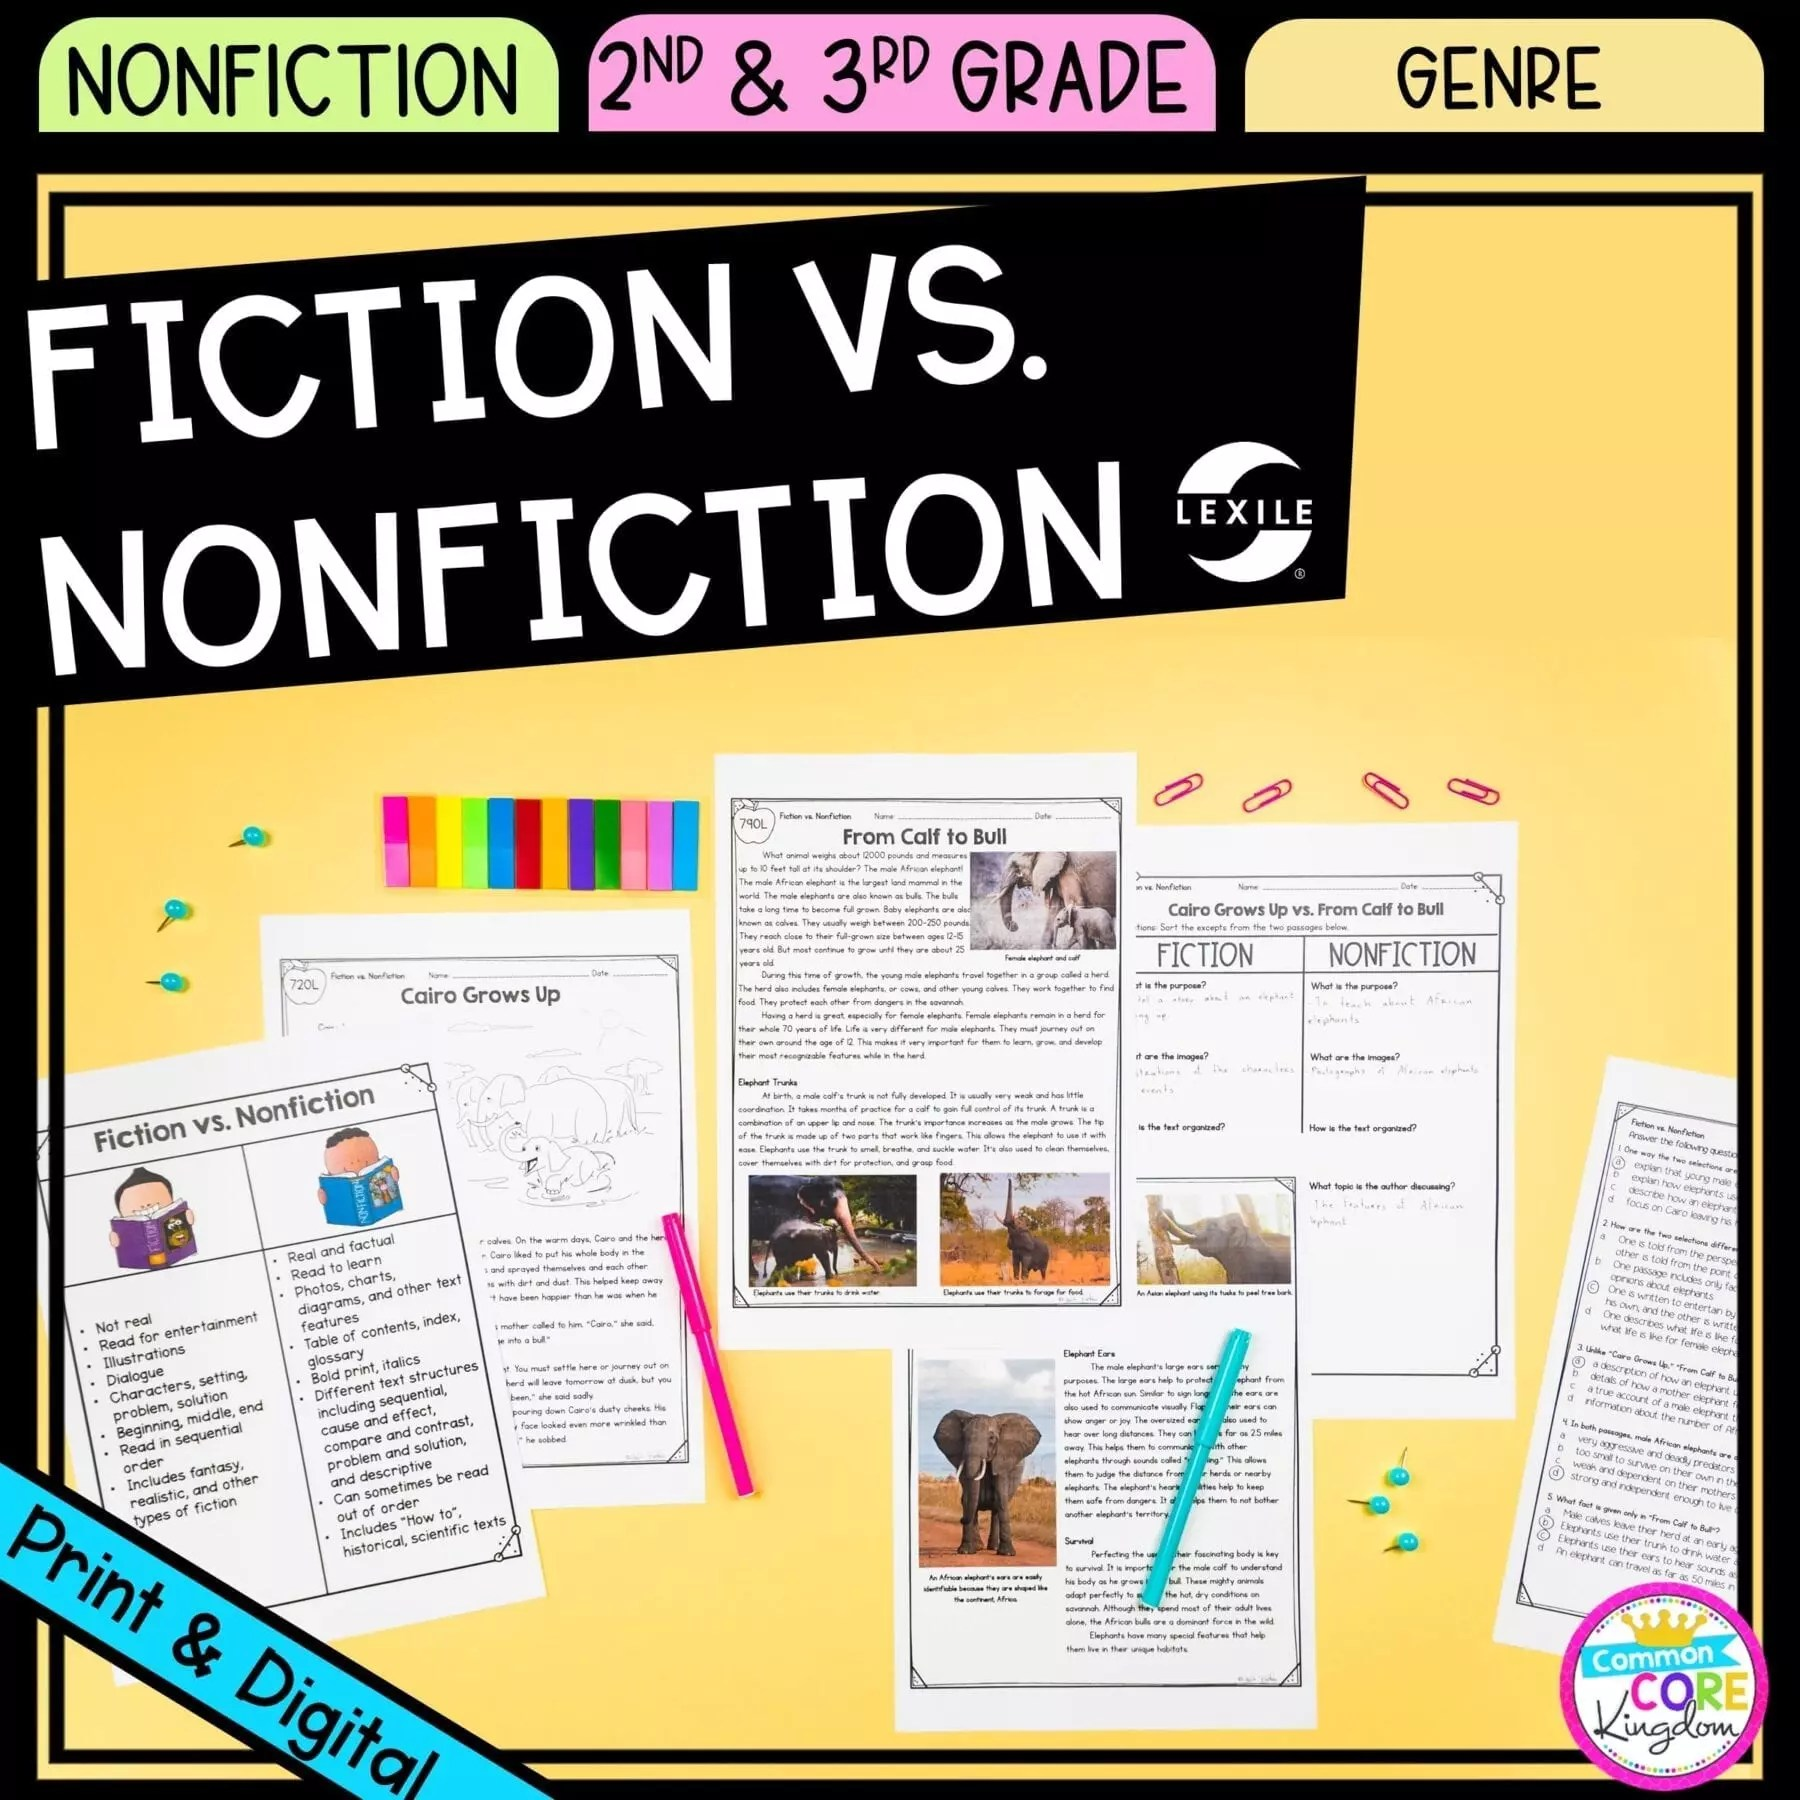 hight resolution of Fiction vs. Nonfiction - 2nd \u0026 3rd Grade - Google Distance Learning    Common Core Kingdom